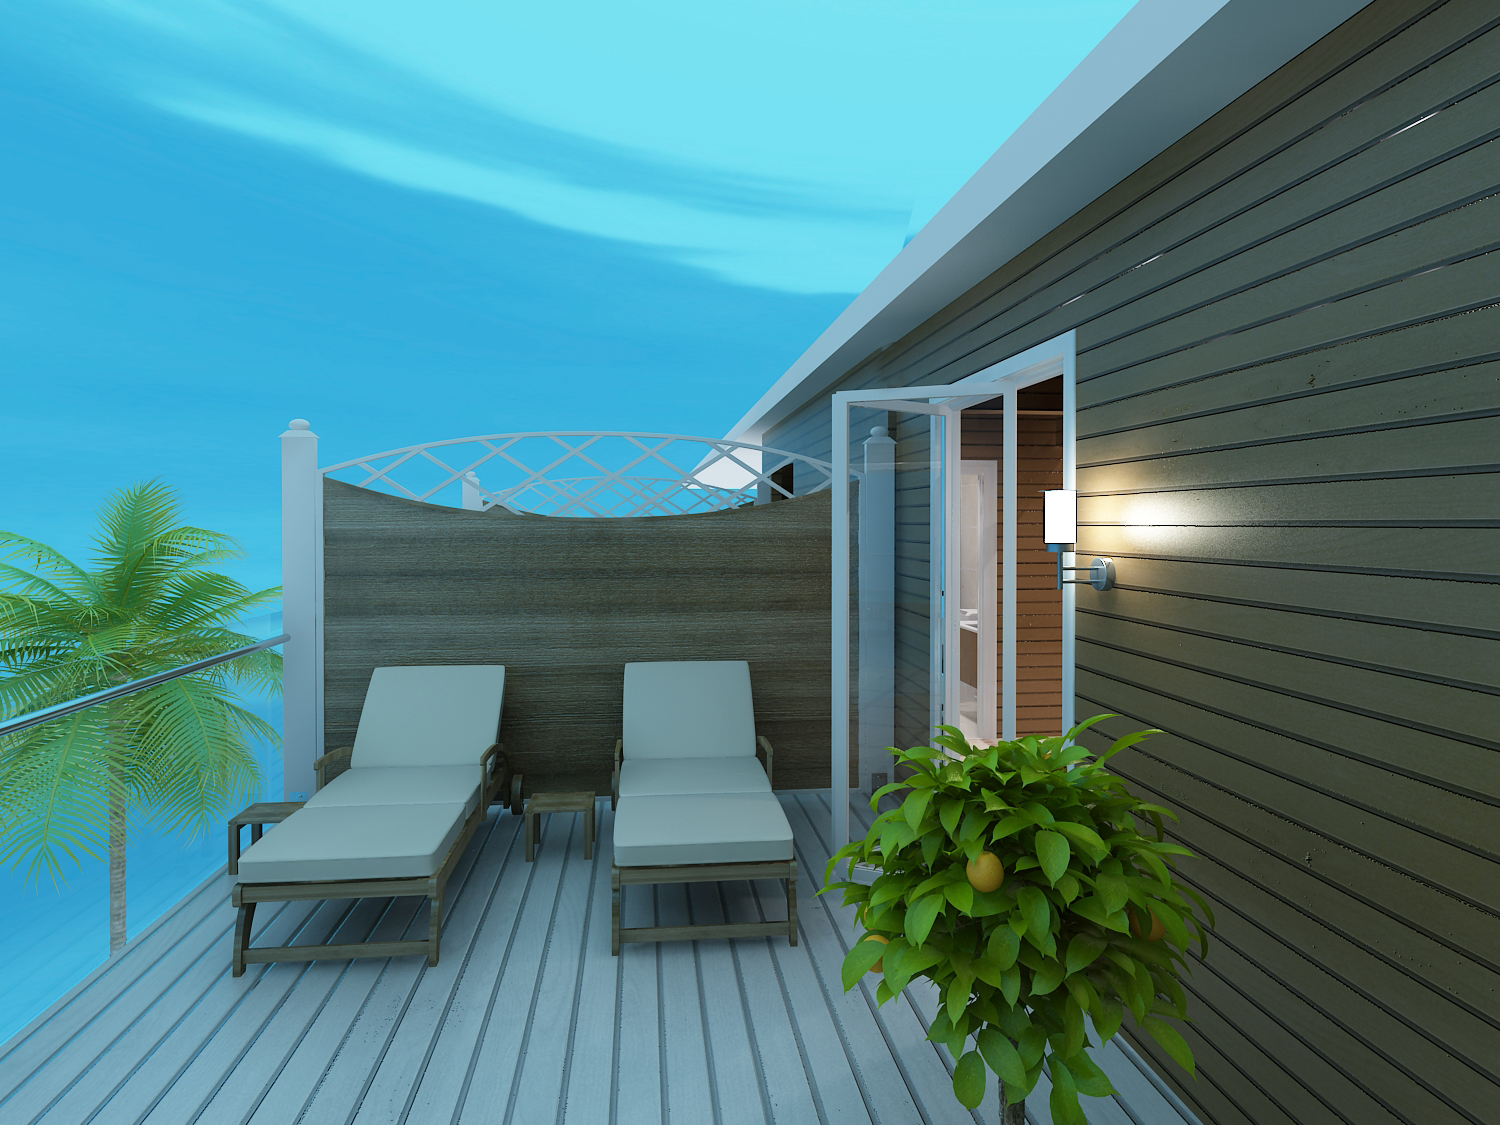 Turtle Cove - 3D Rendering of Exterior Patio with Lounge Chairs